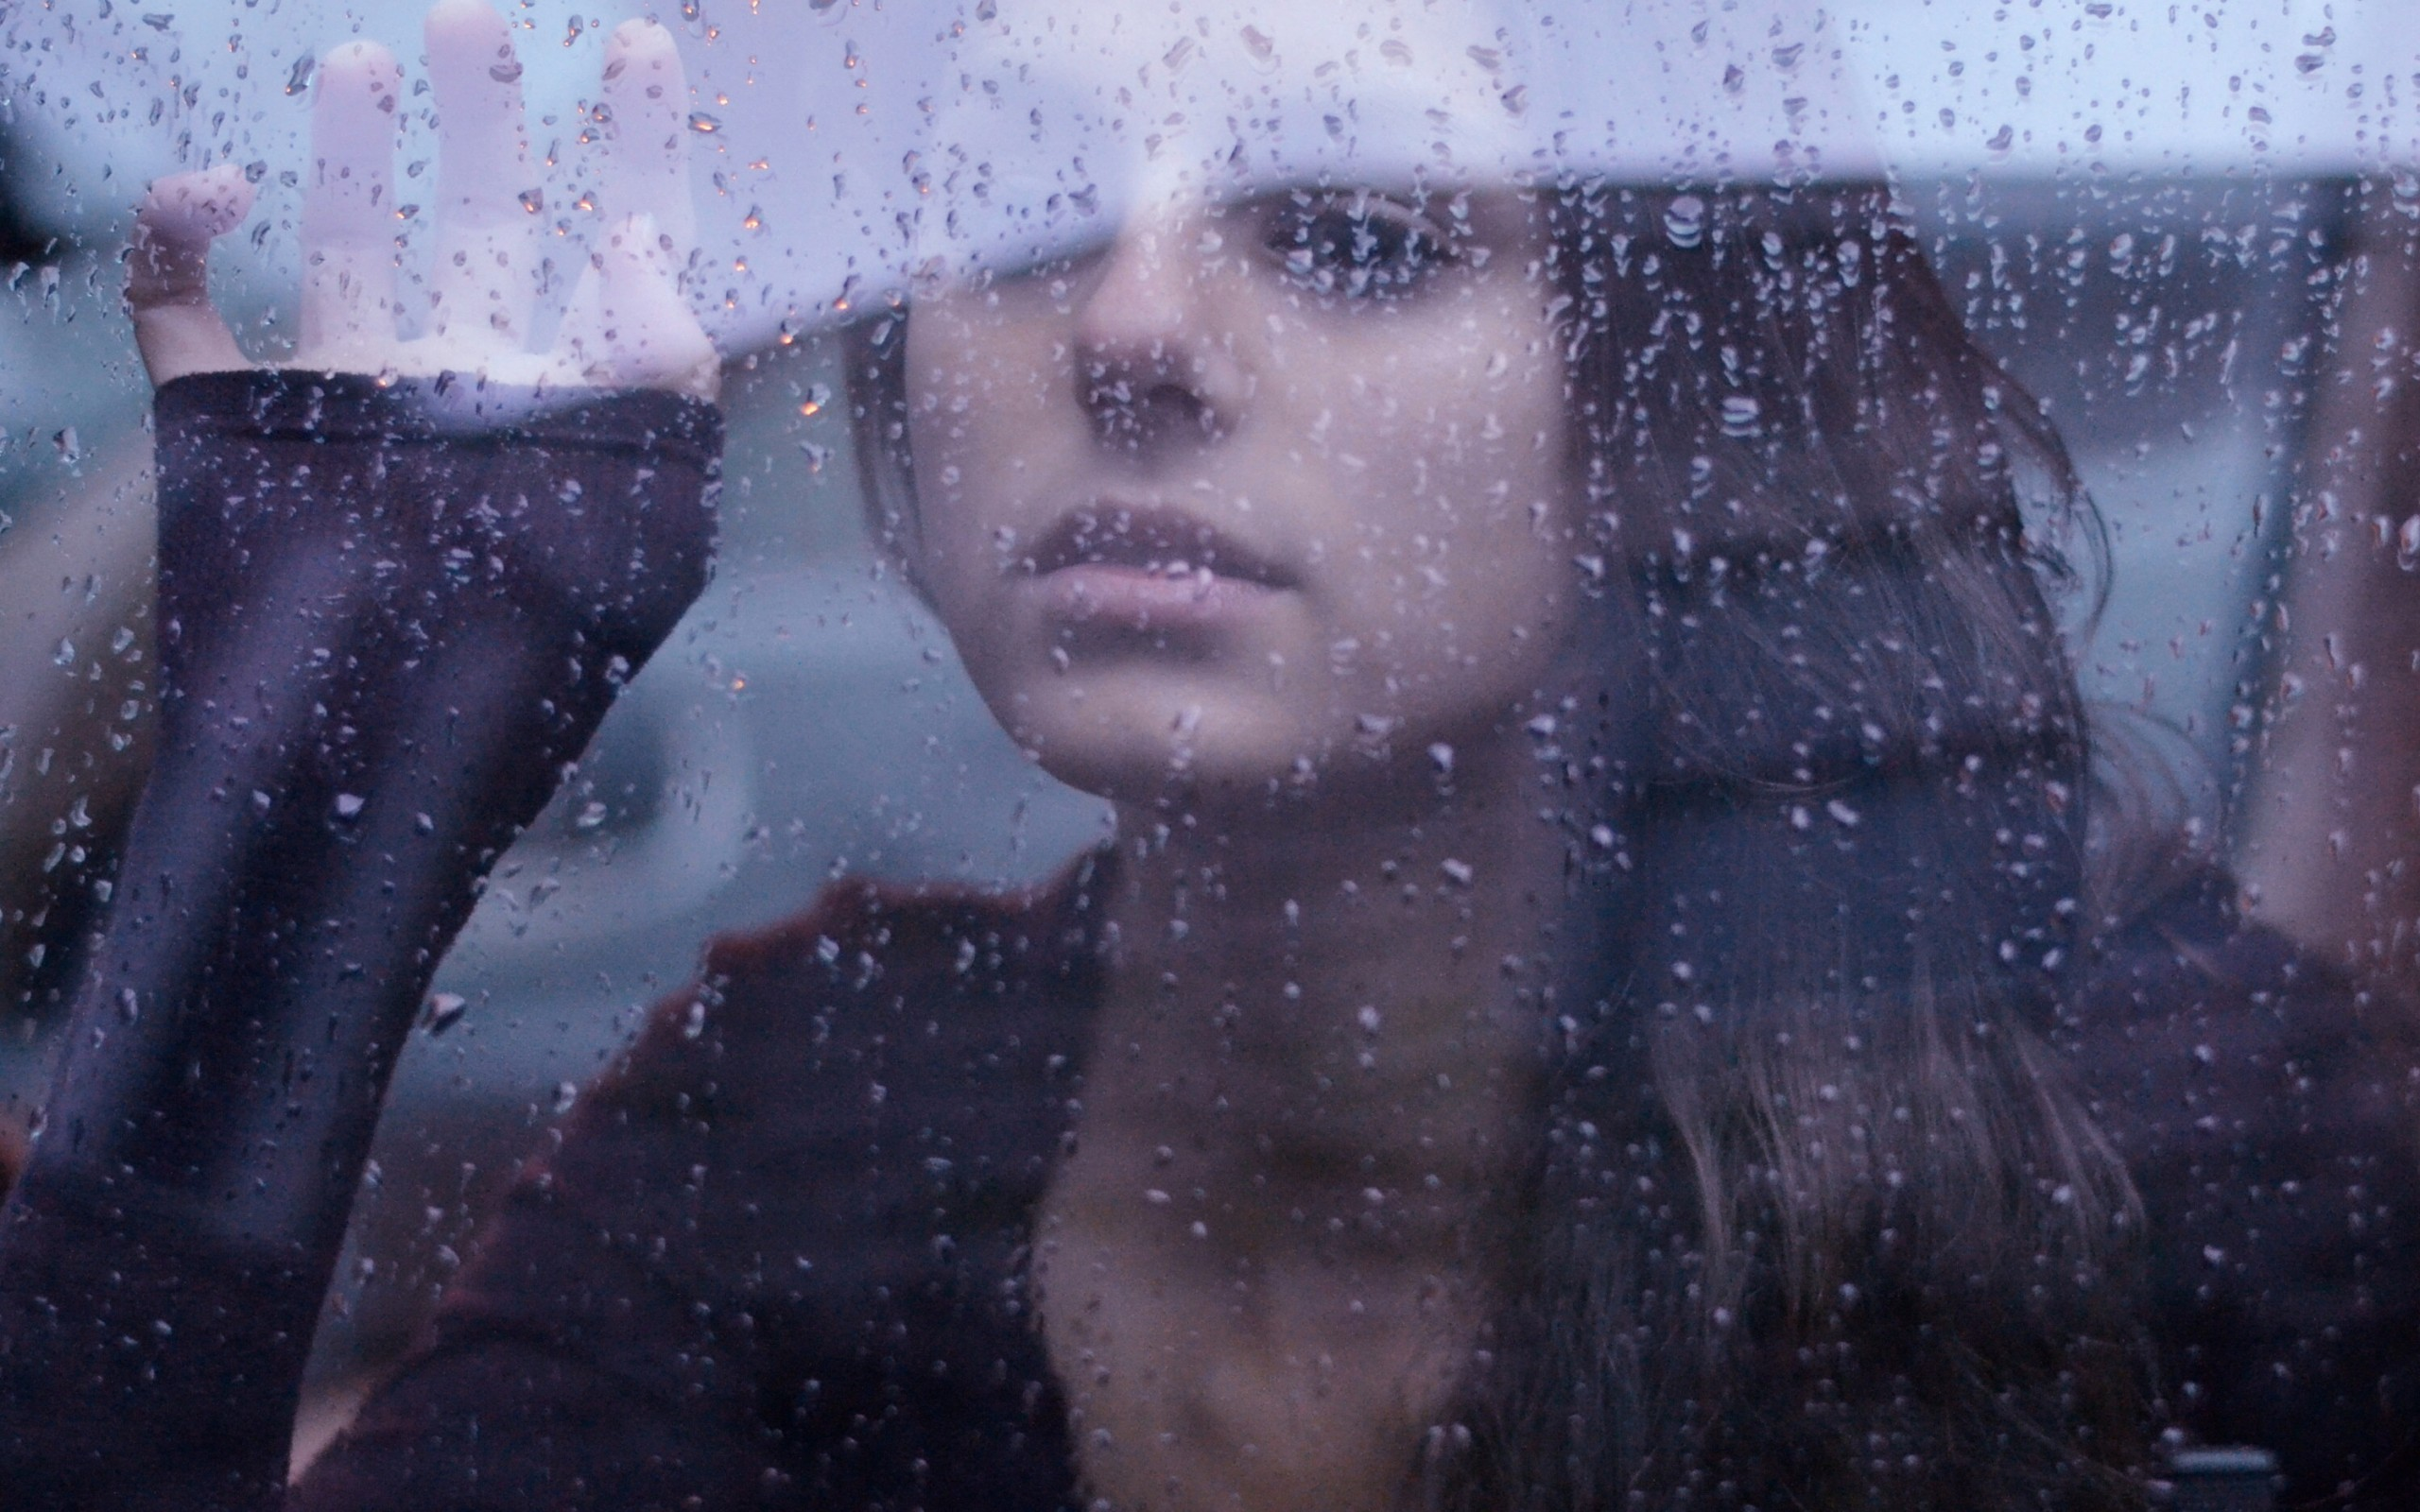 Cute-Girl-Rain-Window-Background.jpg